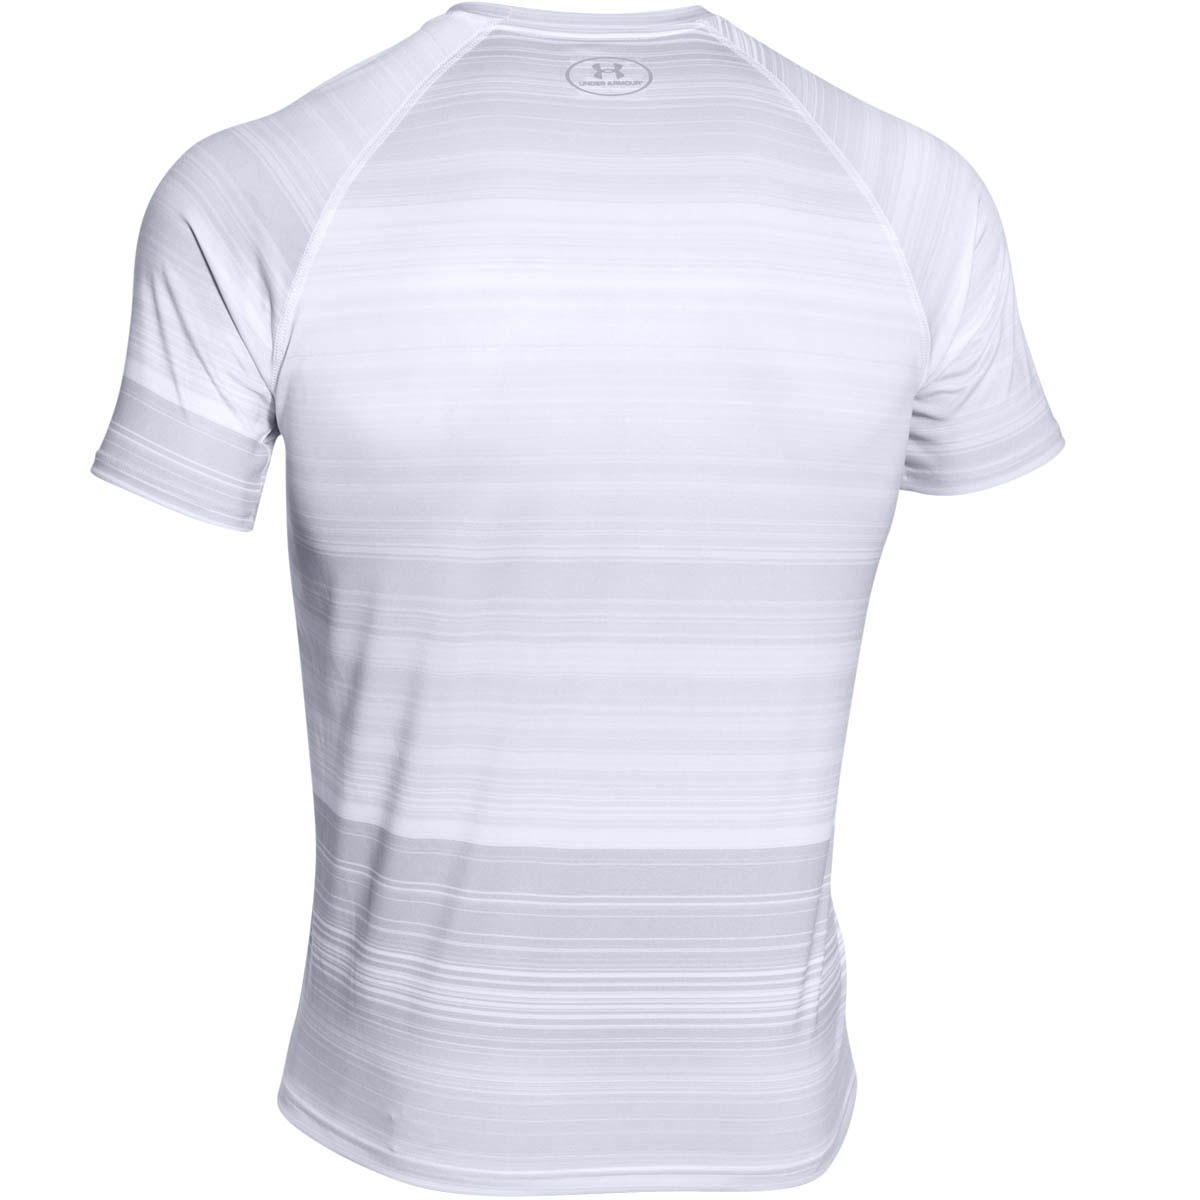 Under Armour 2016 Mens Ua Tech Printed Performance Tech T